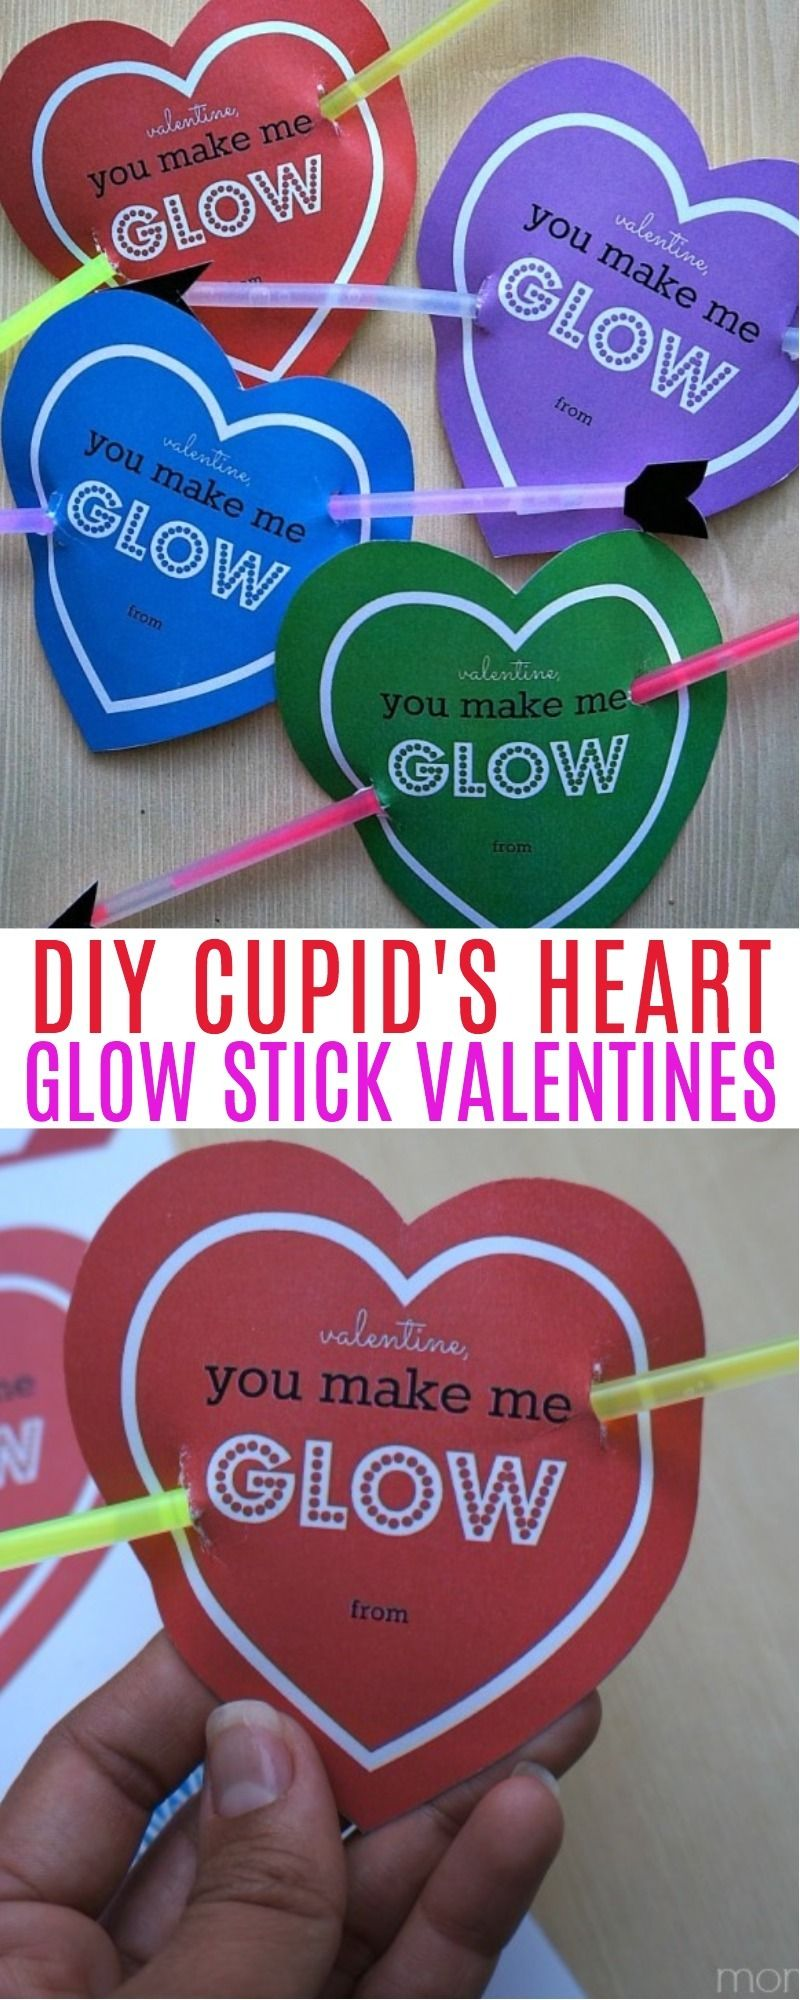 Cupid S Heart Glow Stick Valentines Cute Diy Valentine Cards For